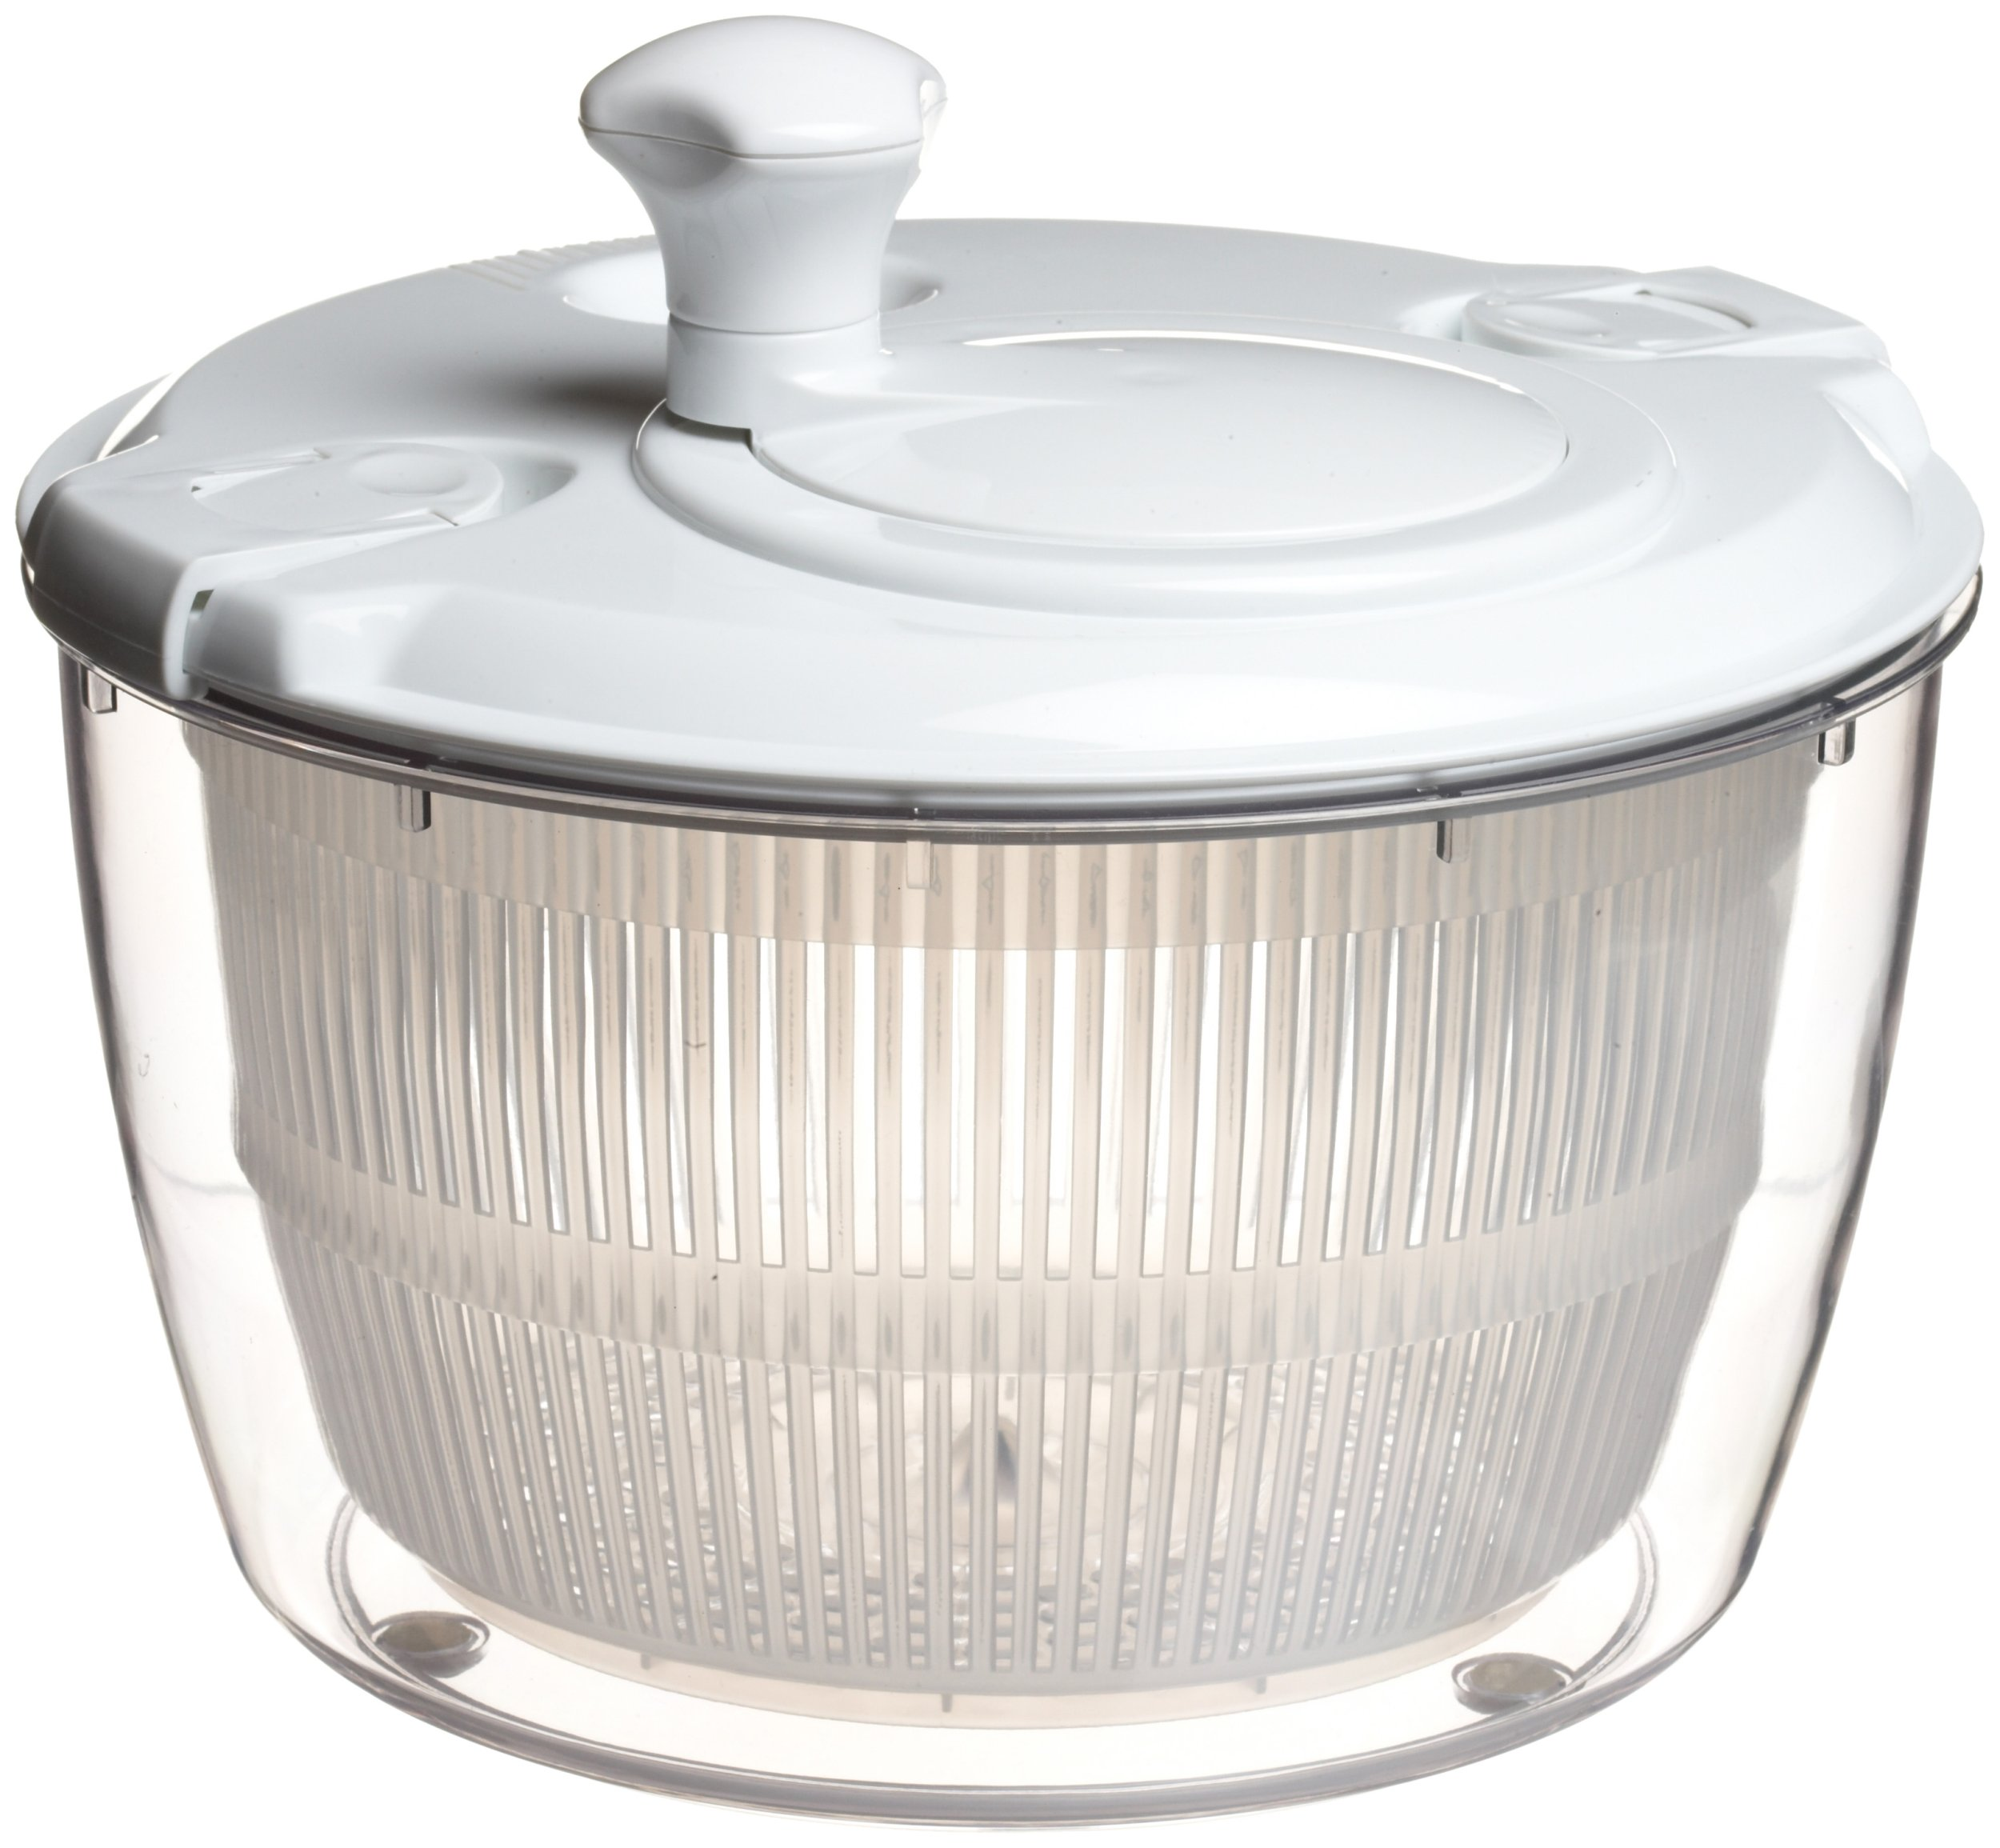 Xtraordinary Home Products Large Salad Spinner, White